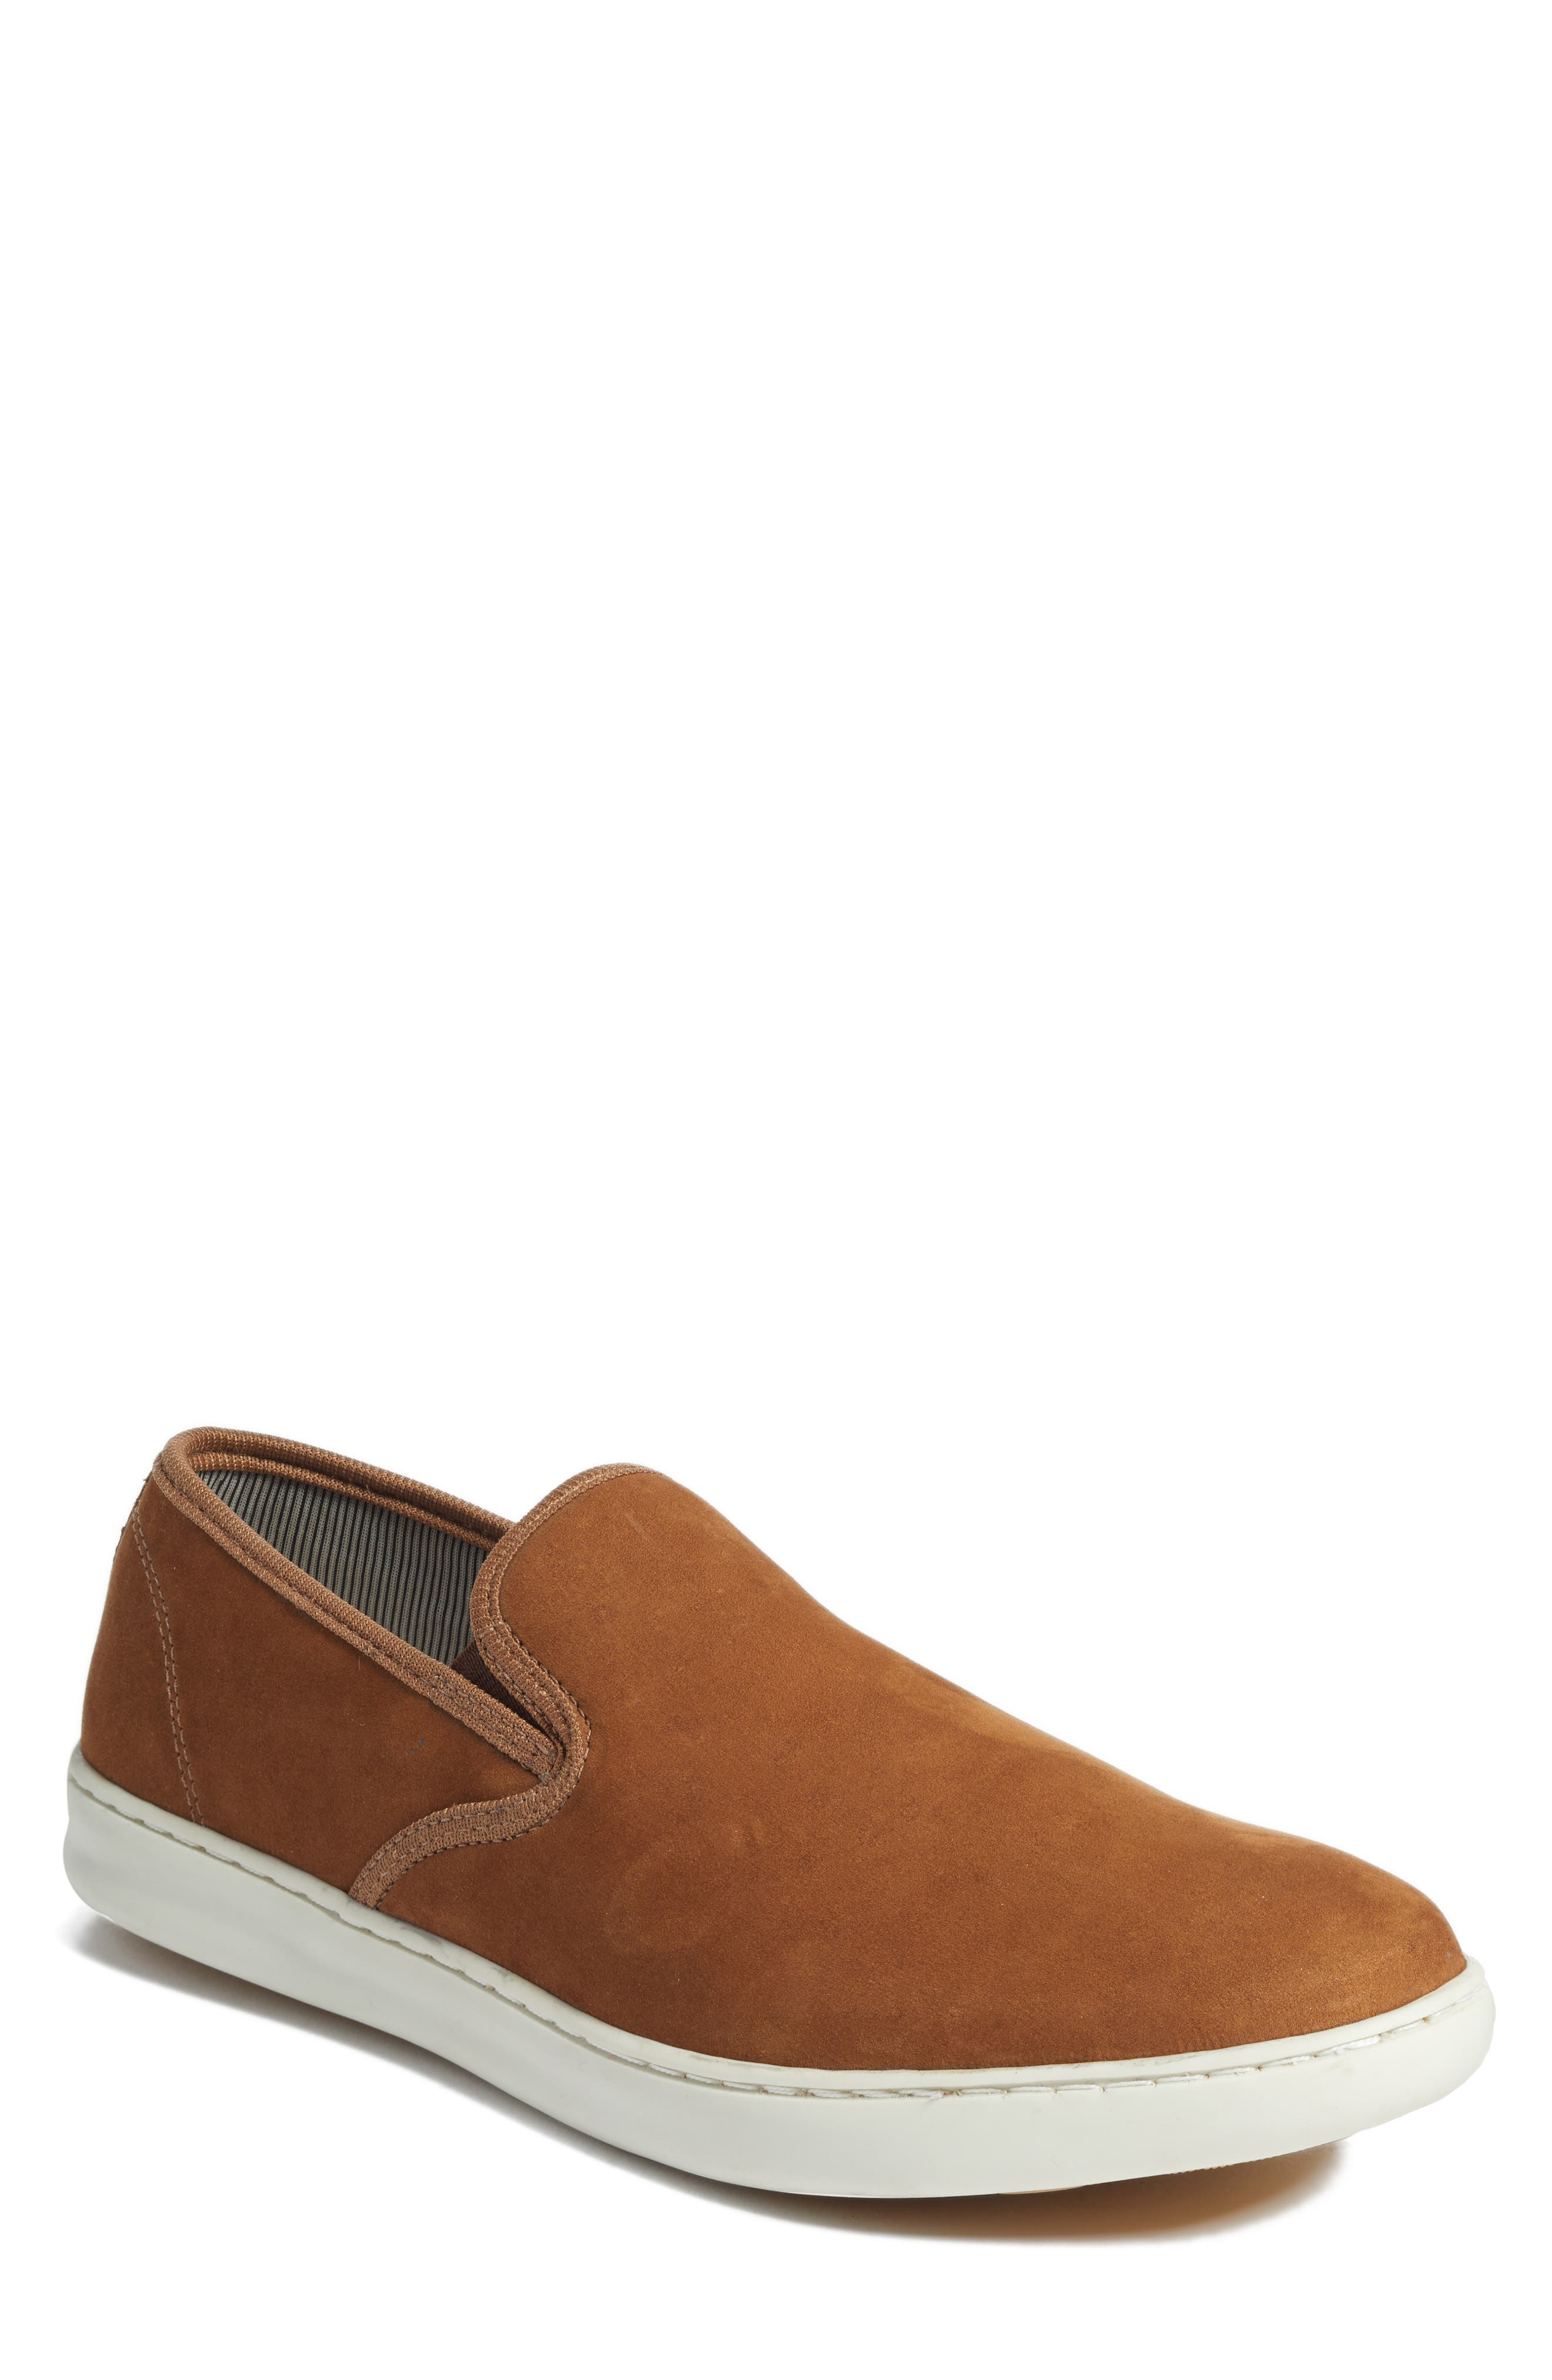 Malibu Slip-on,                             Main thumbnail 1, color,                             Tan Nubuck